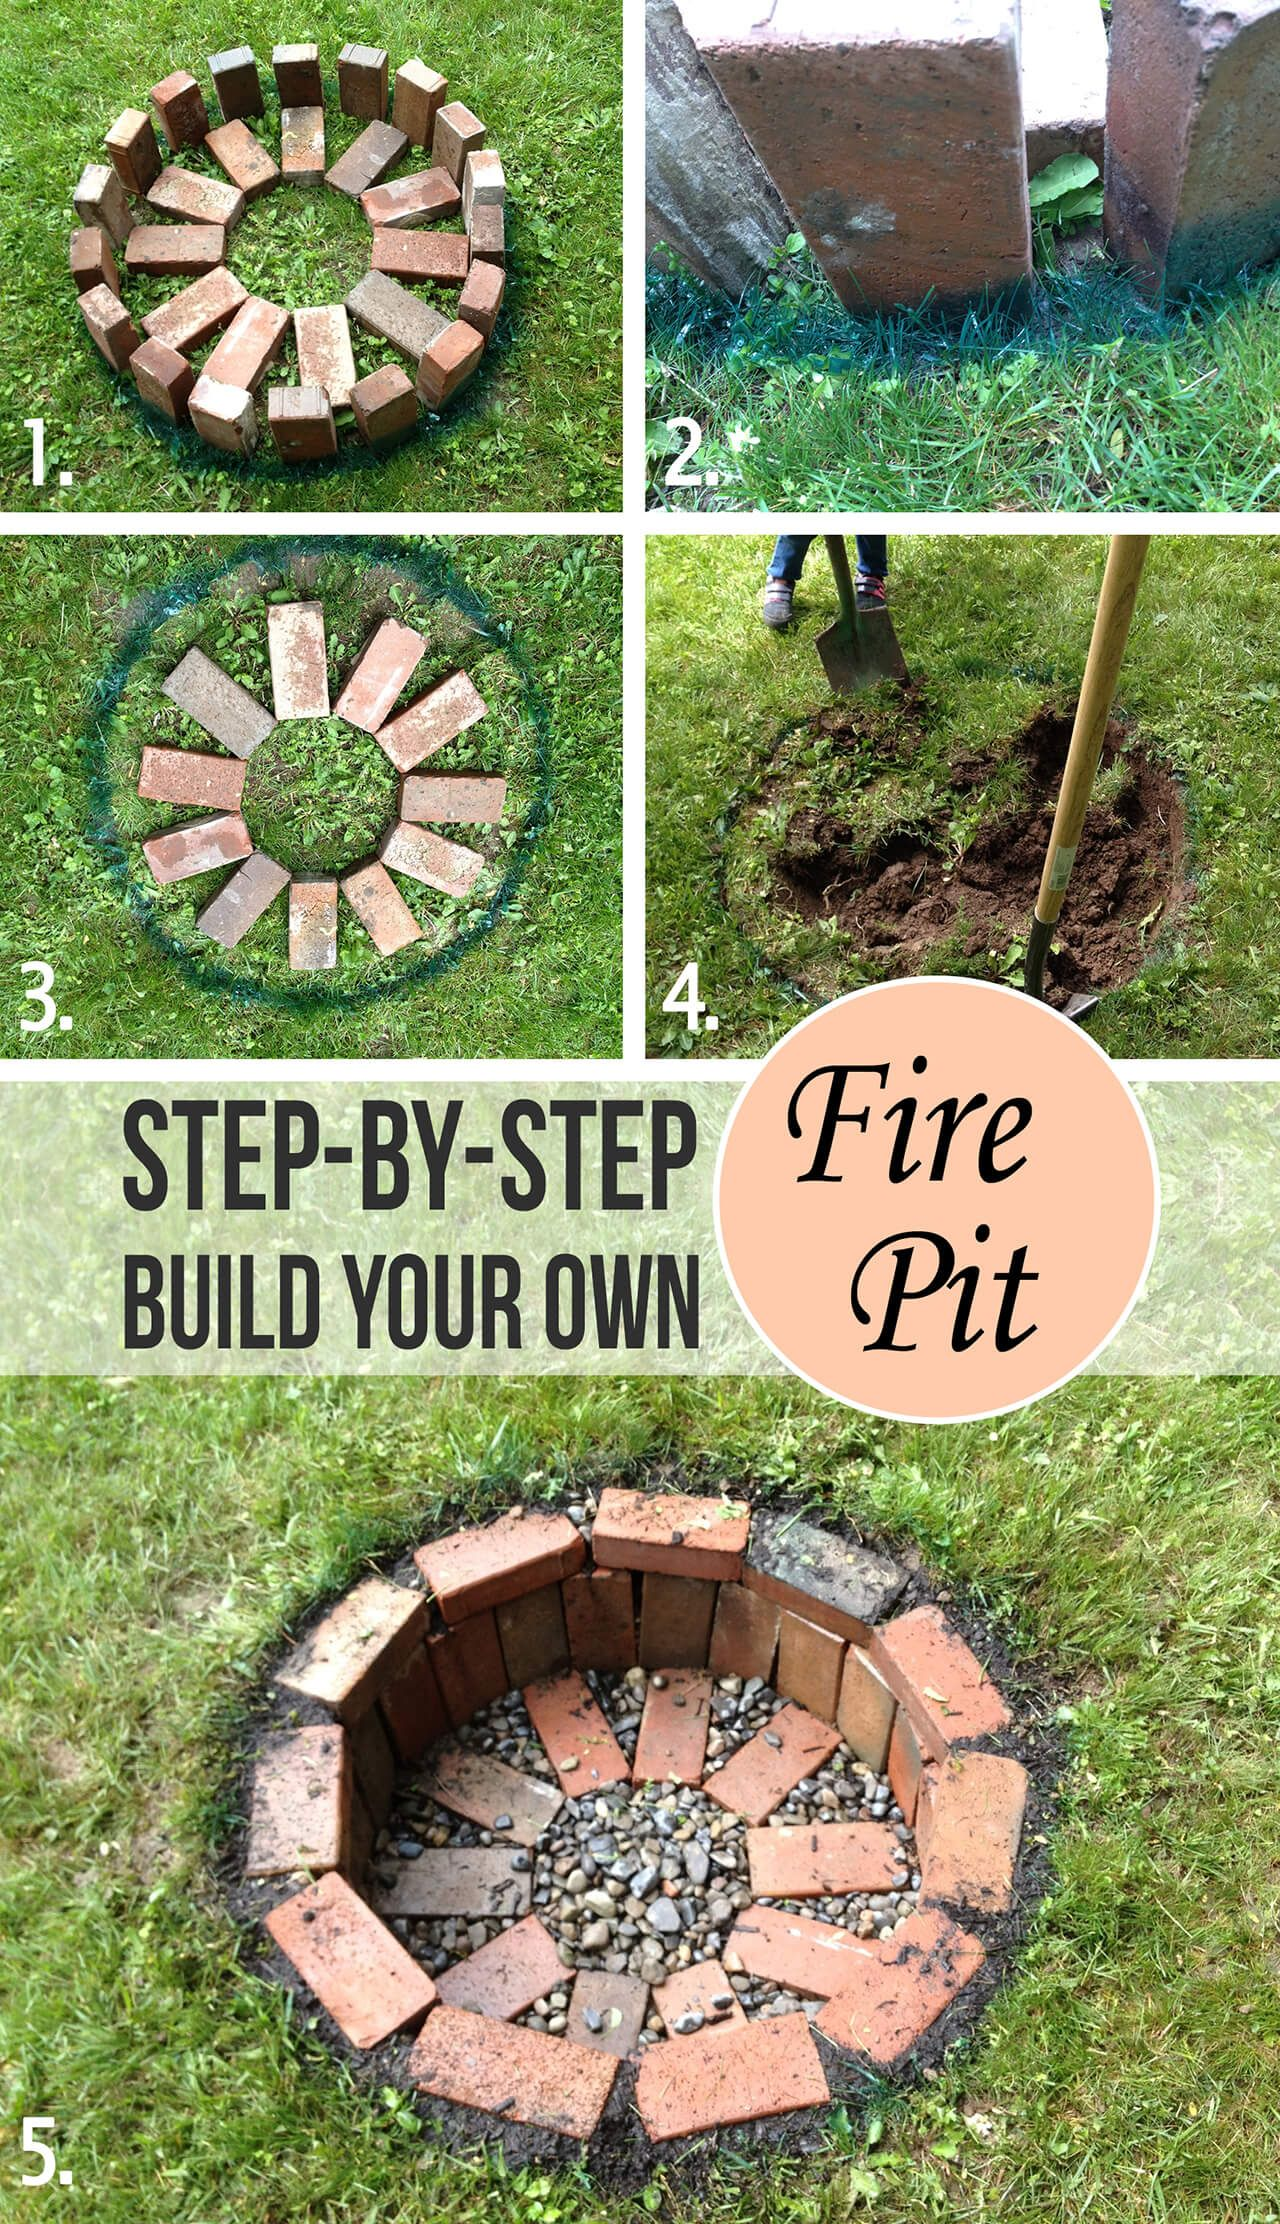 27 Awesome Diy Firepit Ideas For Your Yard Con Imágenes